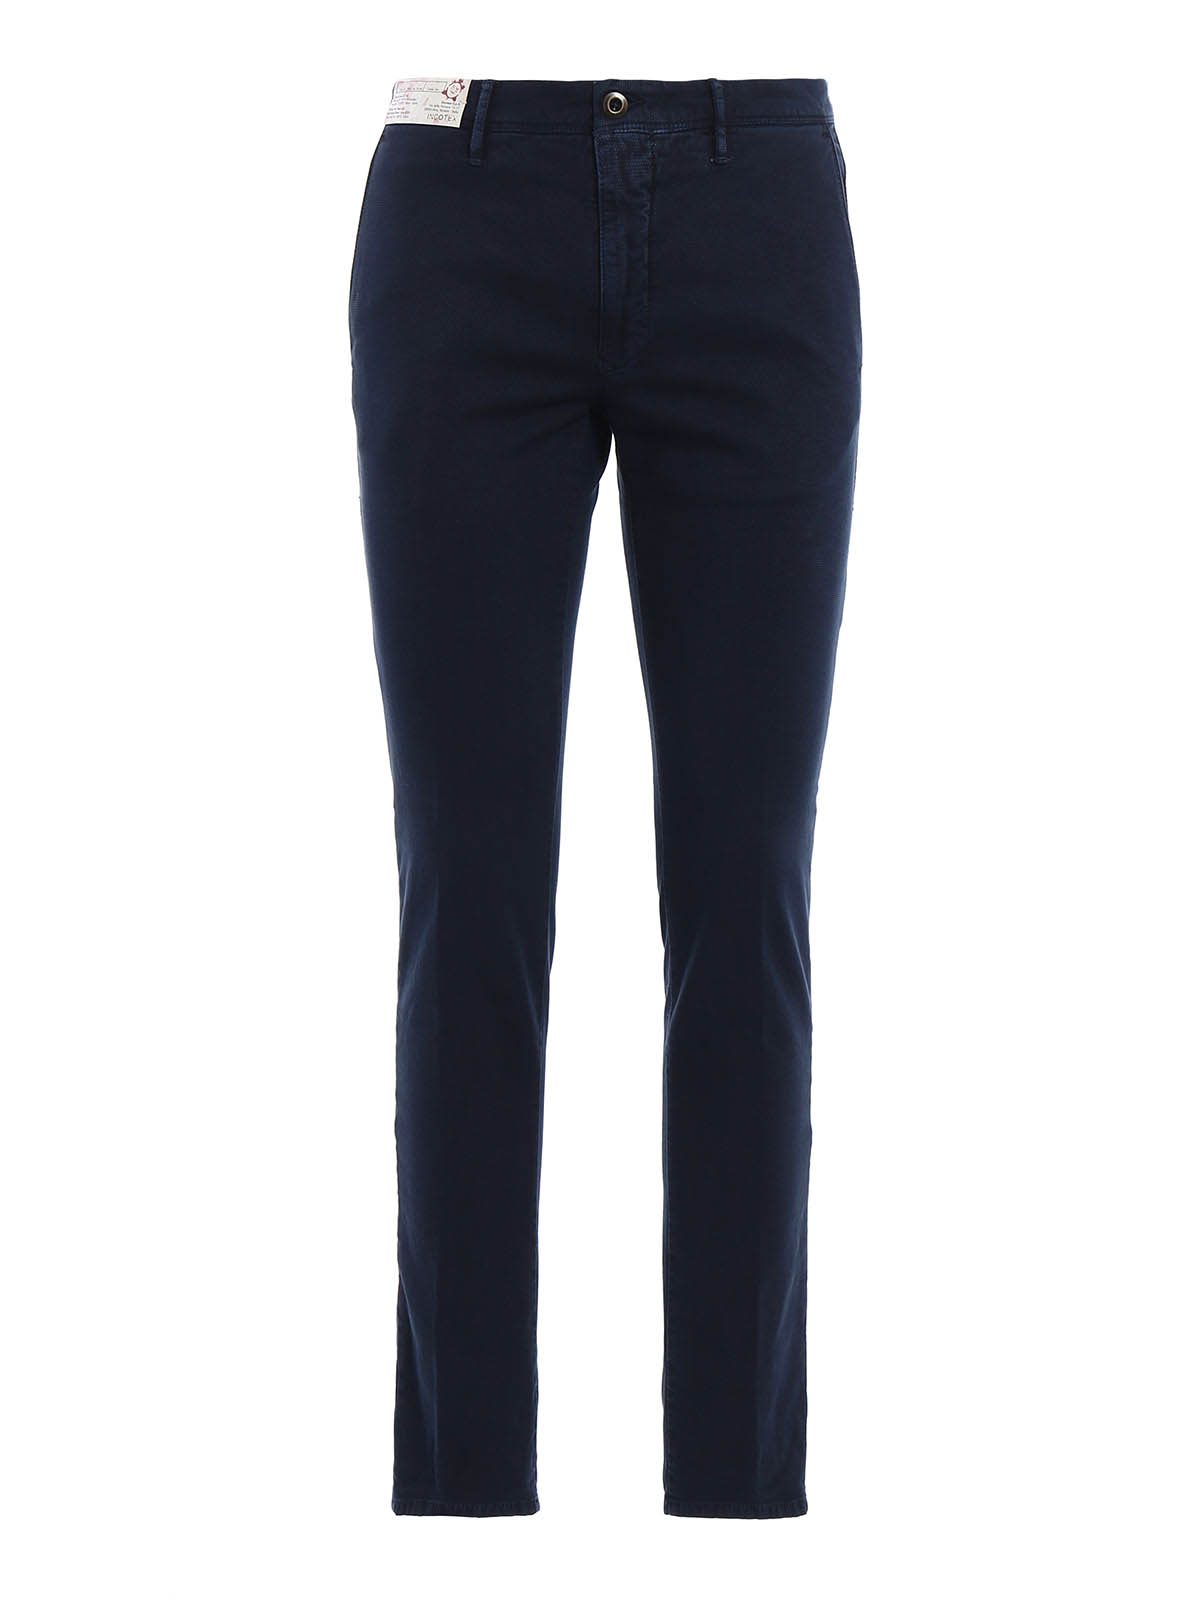 Immagine di INCOTEX | Pantaloni Slacks Slim Fit